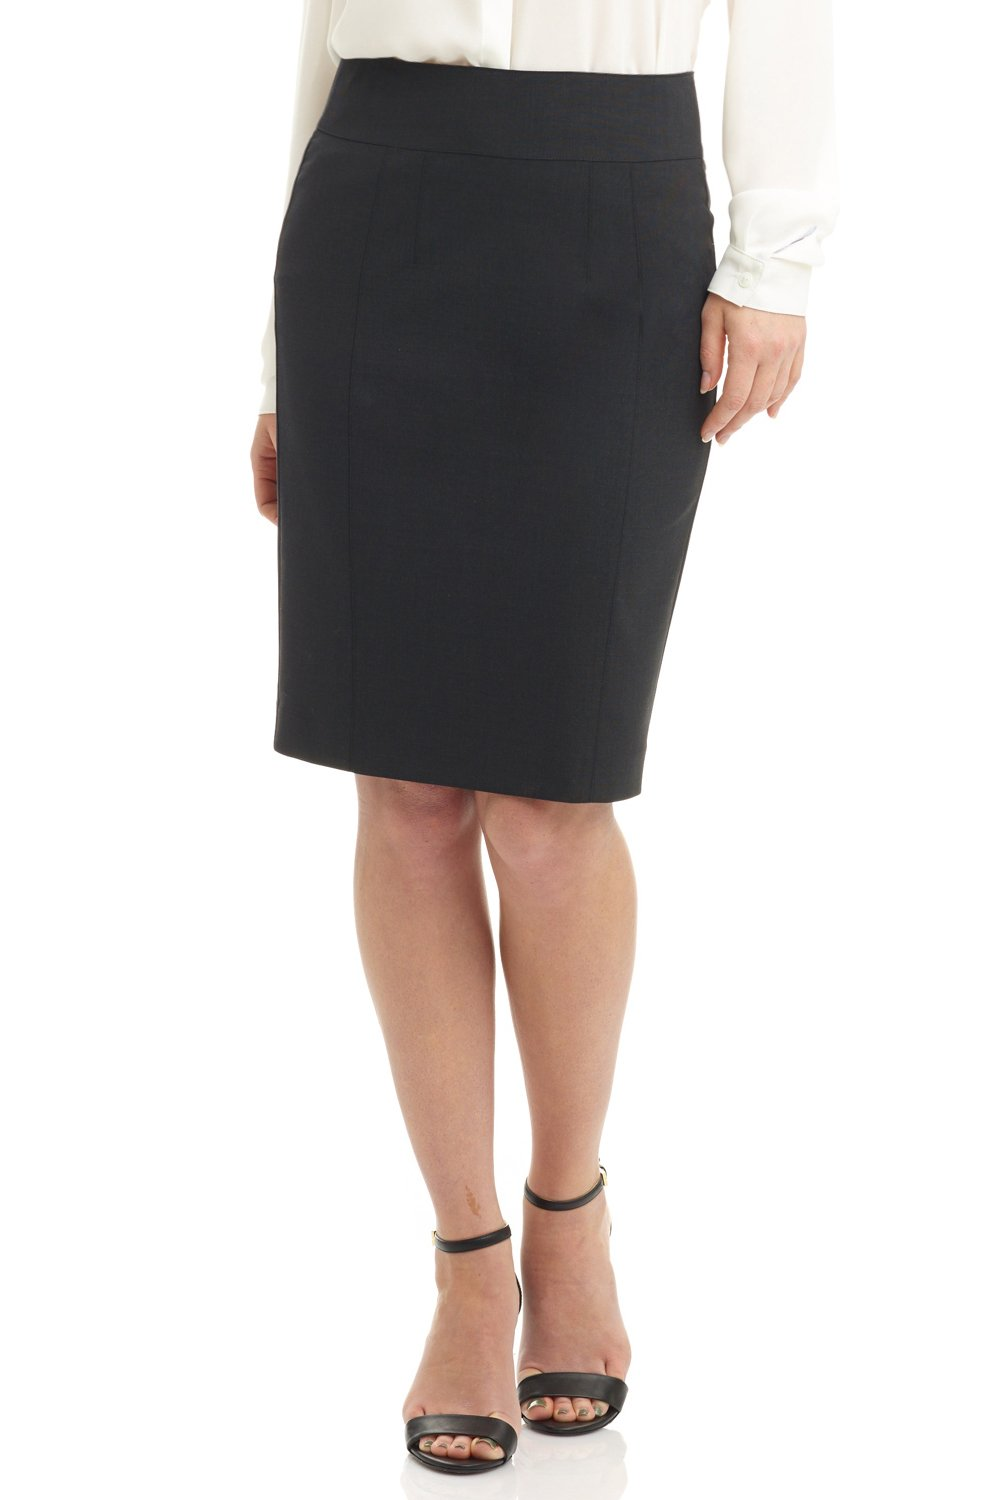 Rekucci Collection Women's Stretch Wool Pencil Skirt with Back Zip Detail (12,Charcoal)